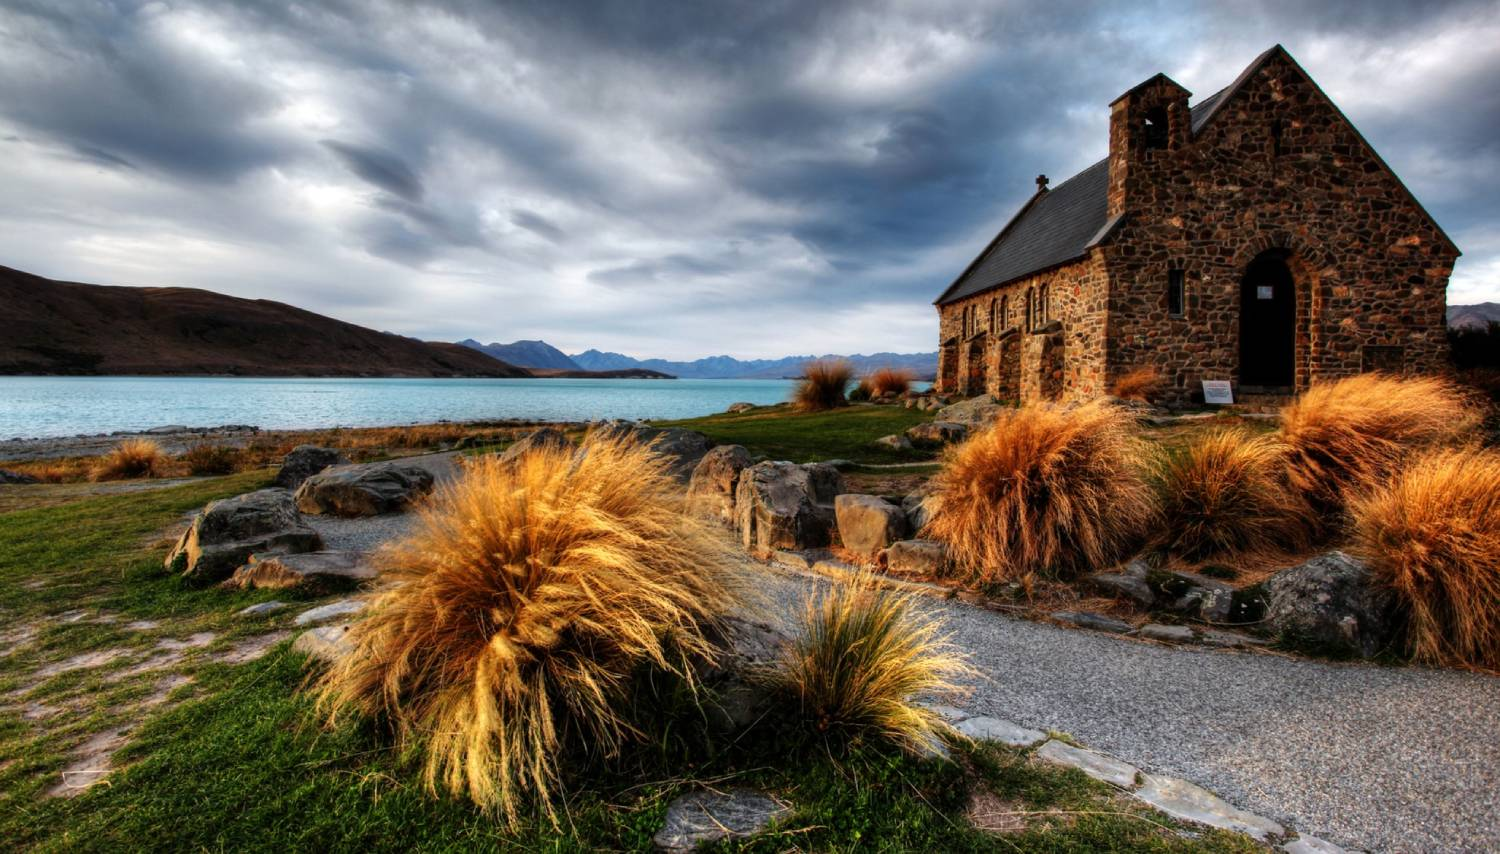 Church of the Good Shepherd - Things To Do In Christchurch